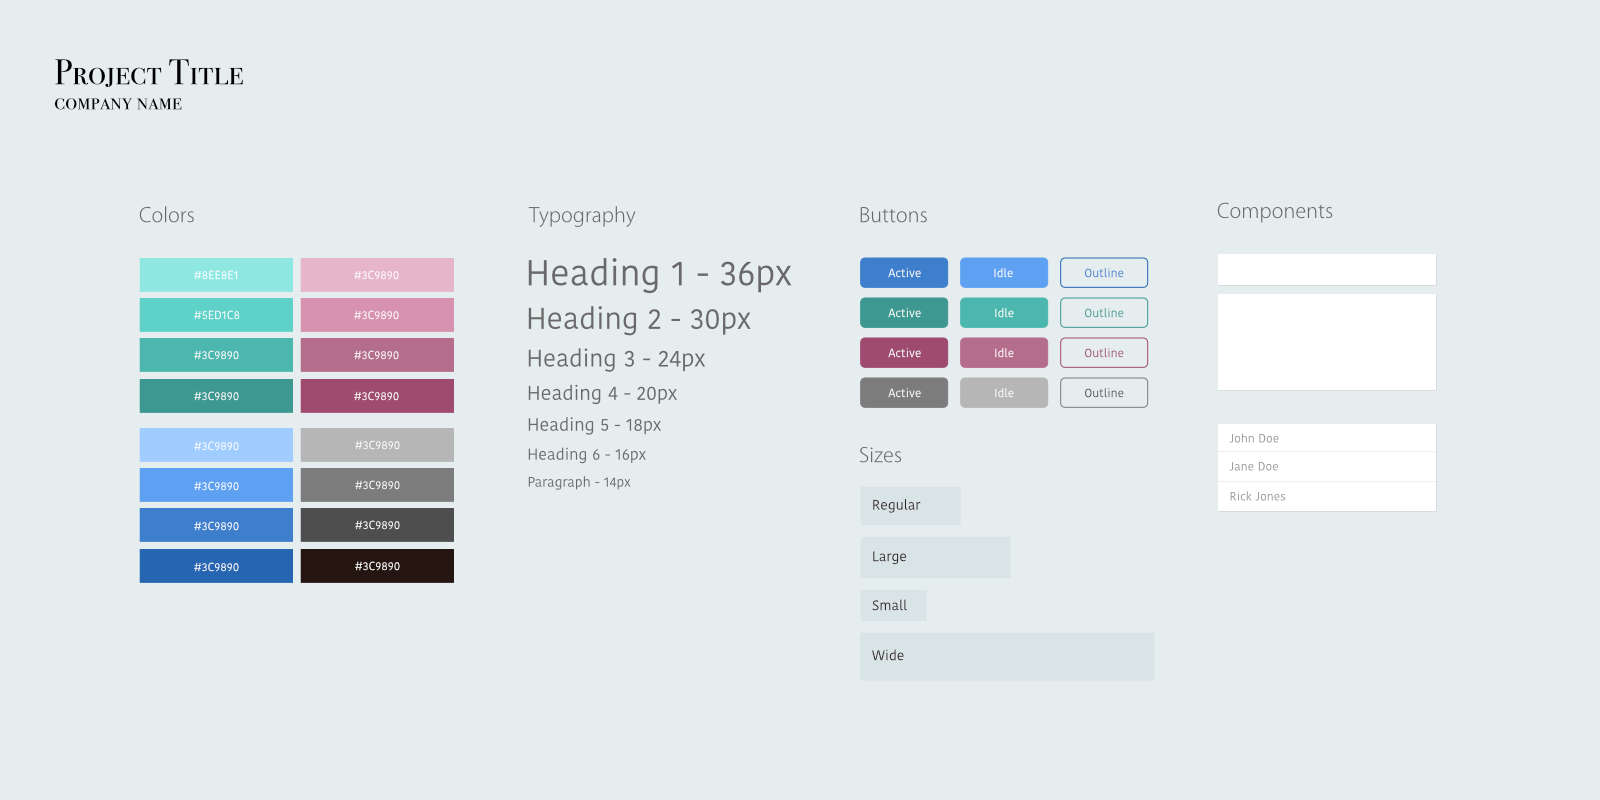 Styleguide template